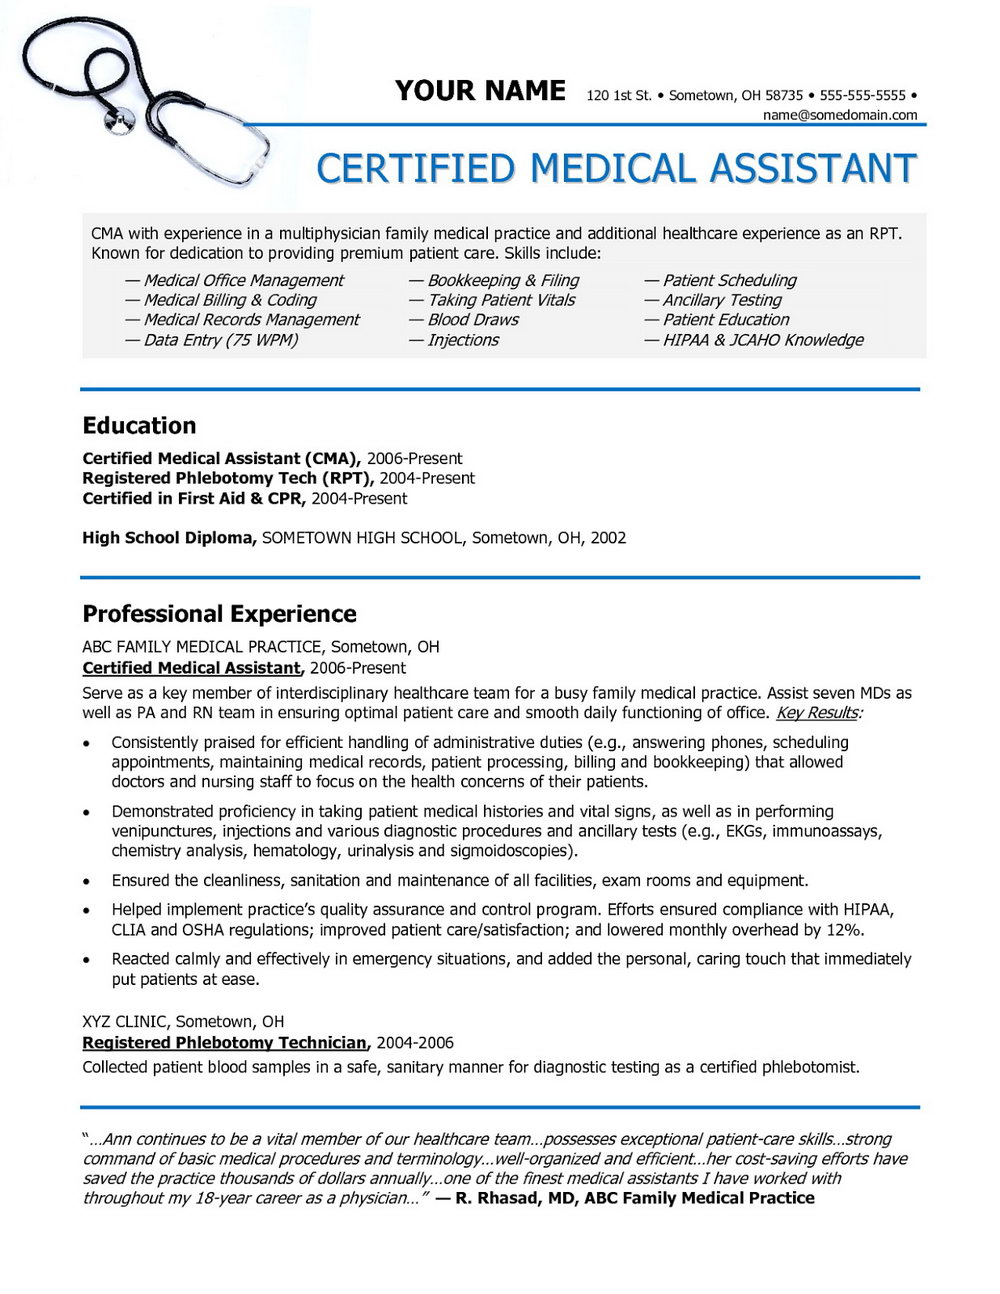 Samples Of Resumes For Medical Assistant